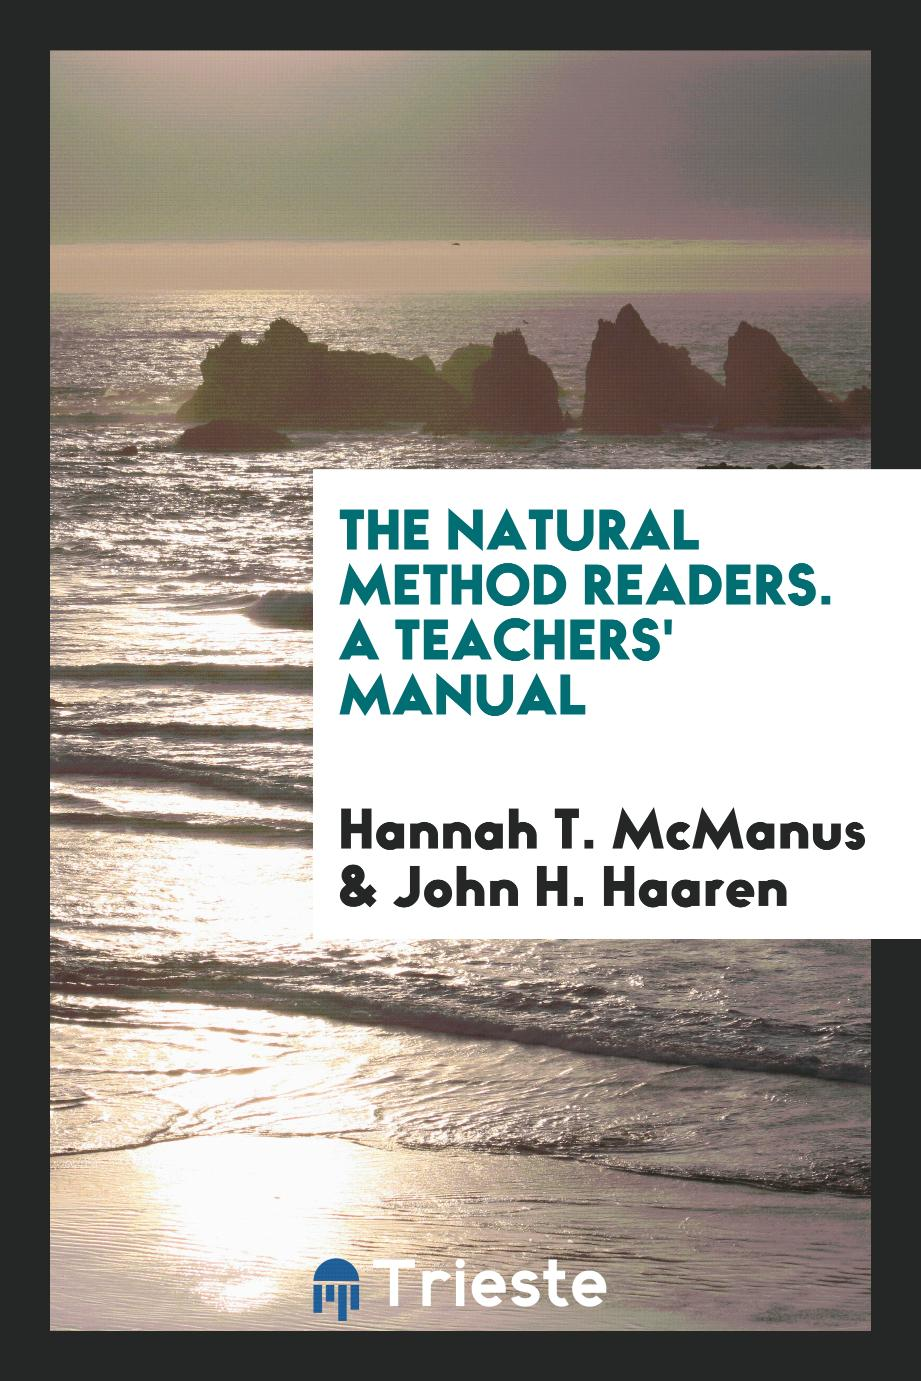 The Natural Method Readers. A Teachers' Manual